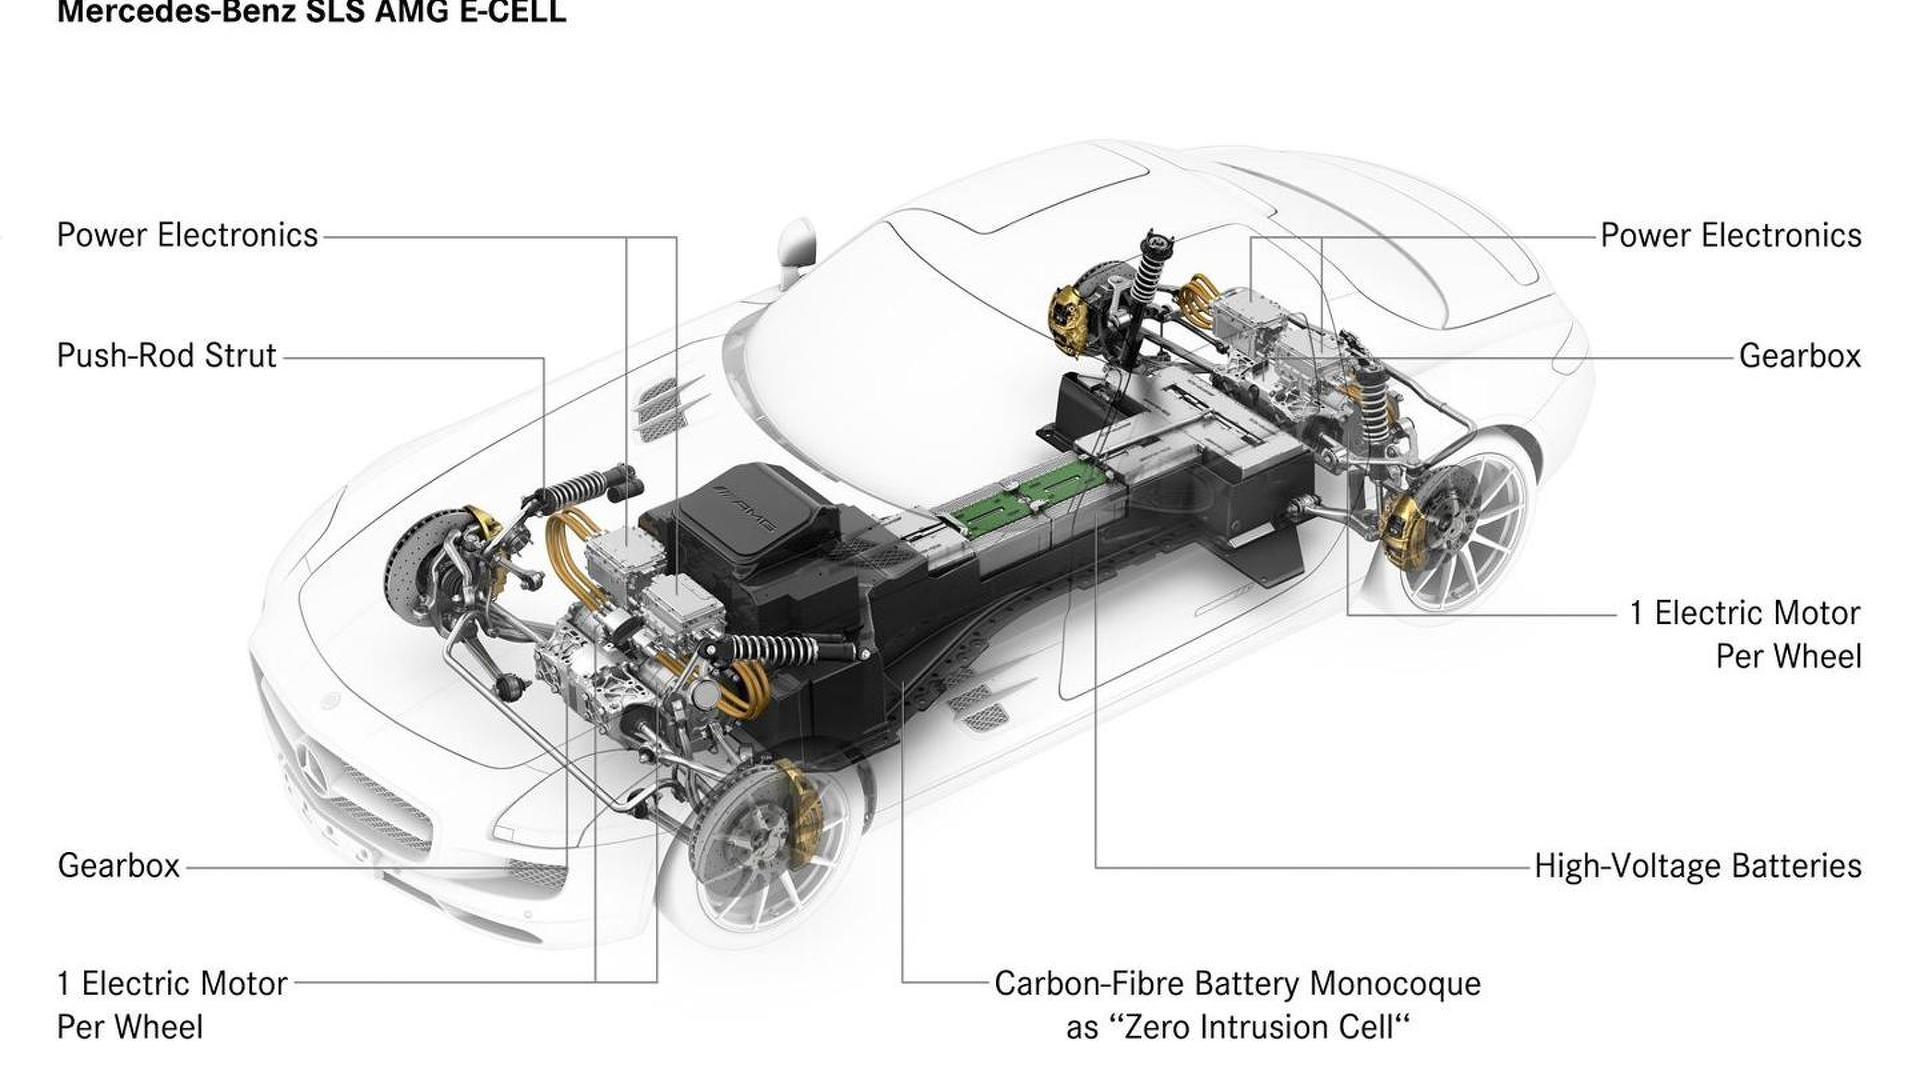 Mercedes Sls Amg E Cell Electric Drivetrain Revealed